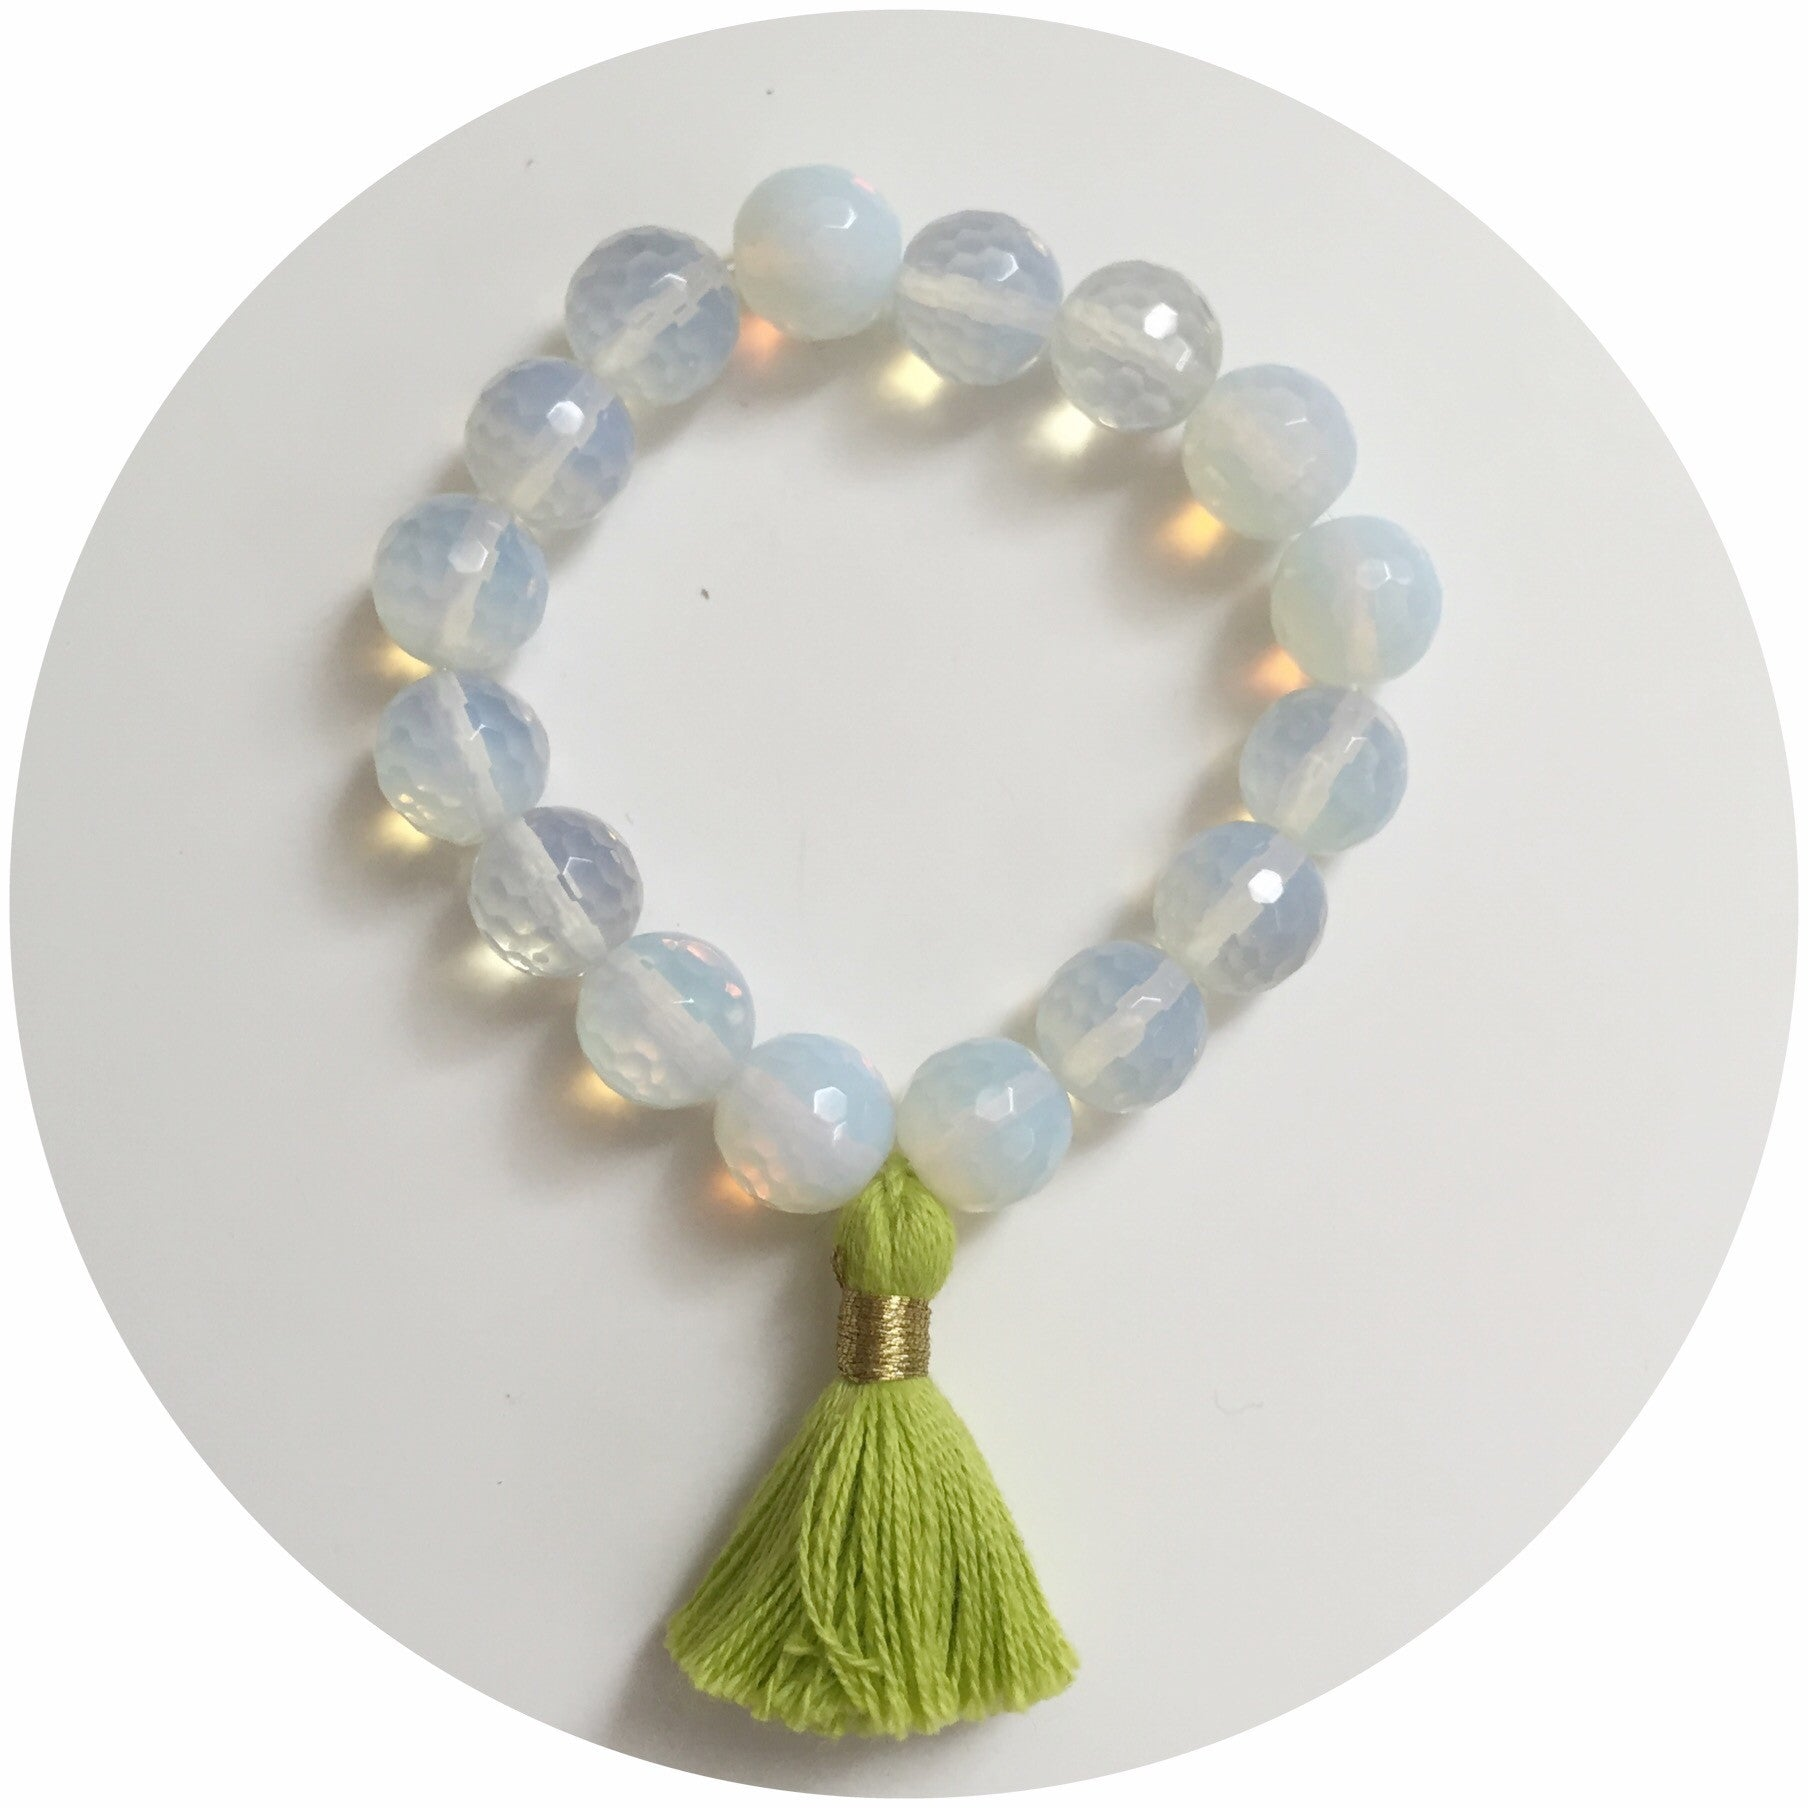 Opalite with Lime Green Tassel - Oriana Lamarca LLC